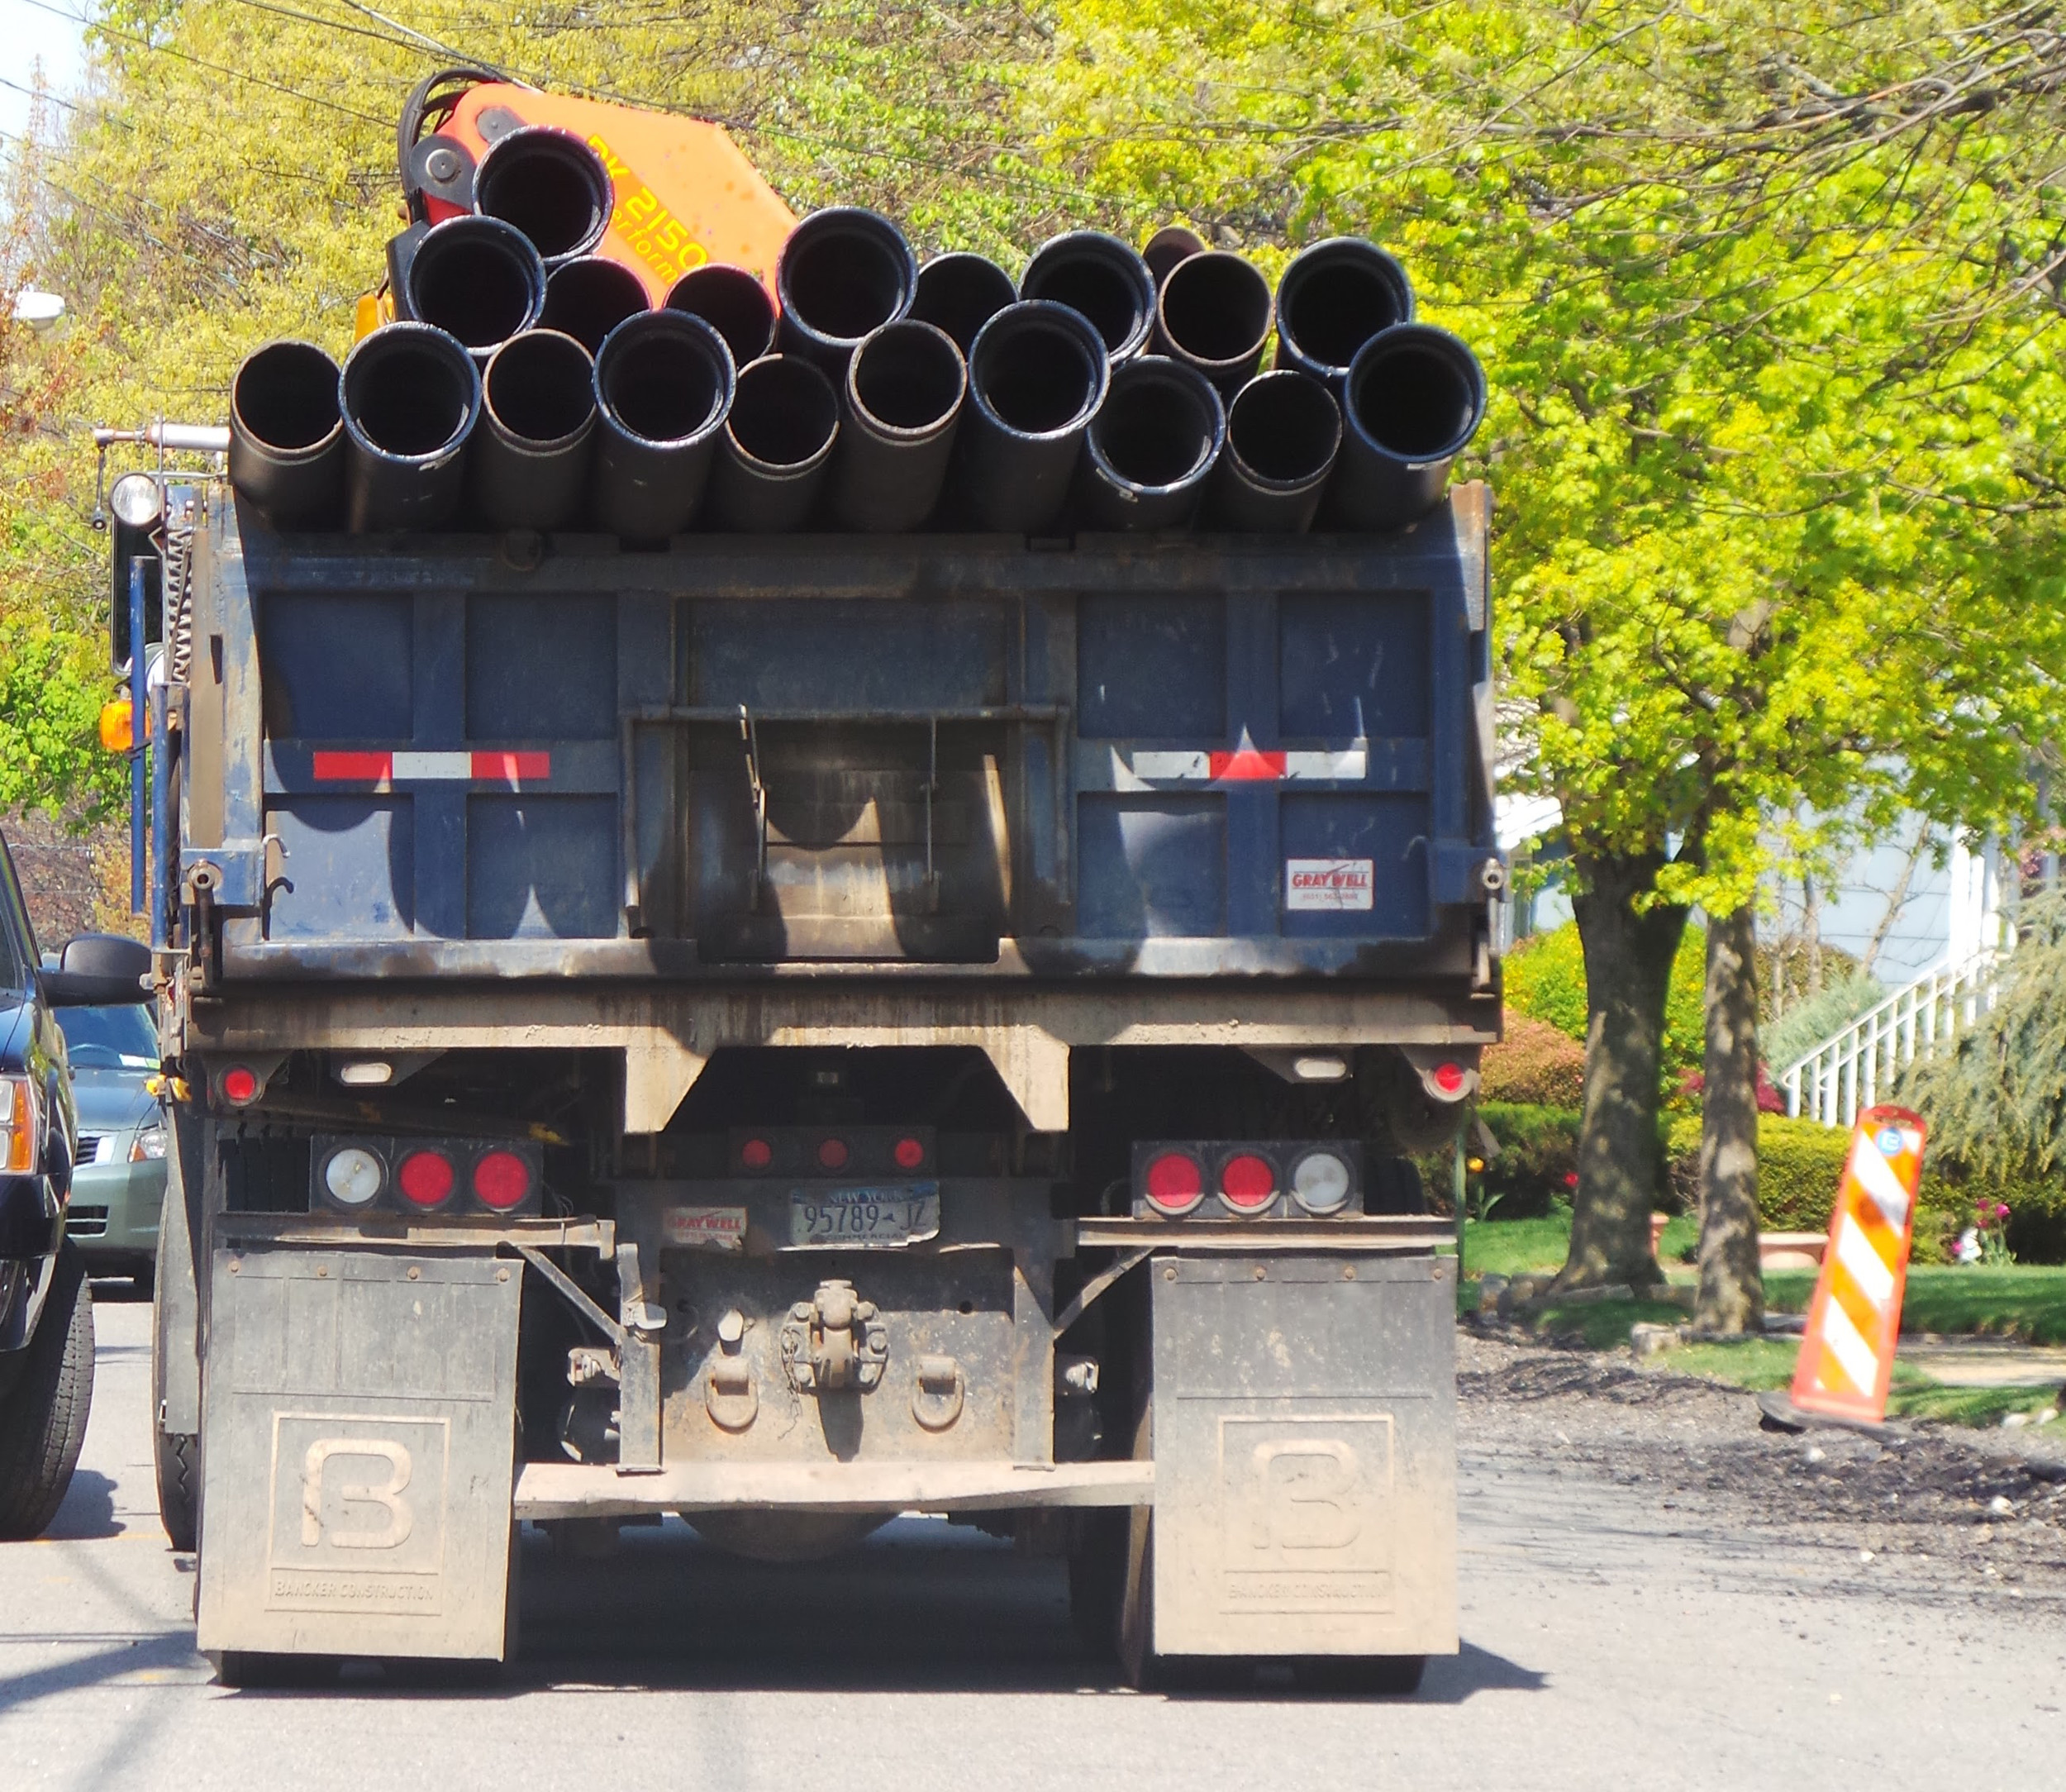 A truck carried water mains scheduled for replacement on Malverne Ave. during May 2015.